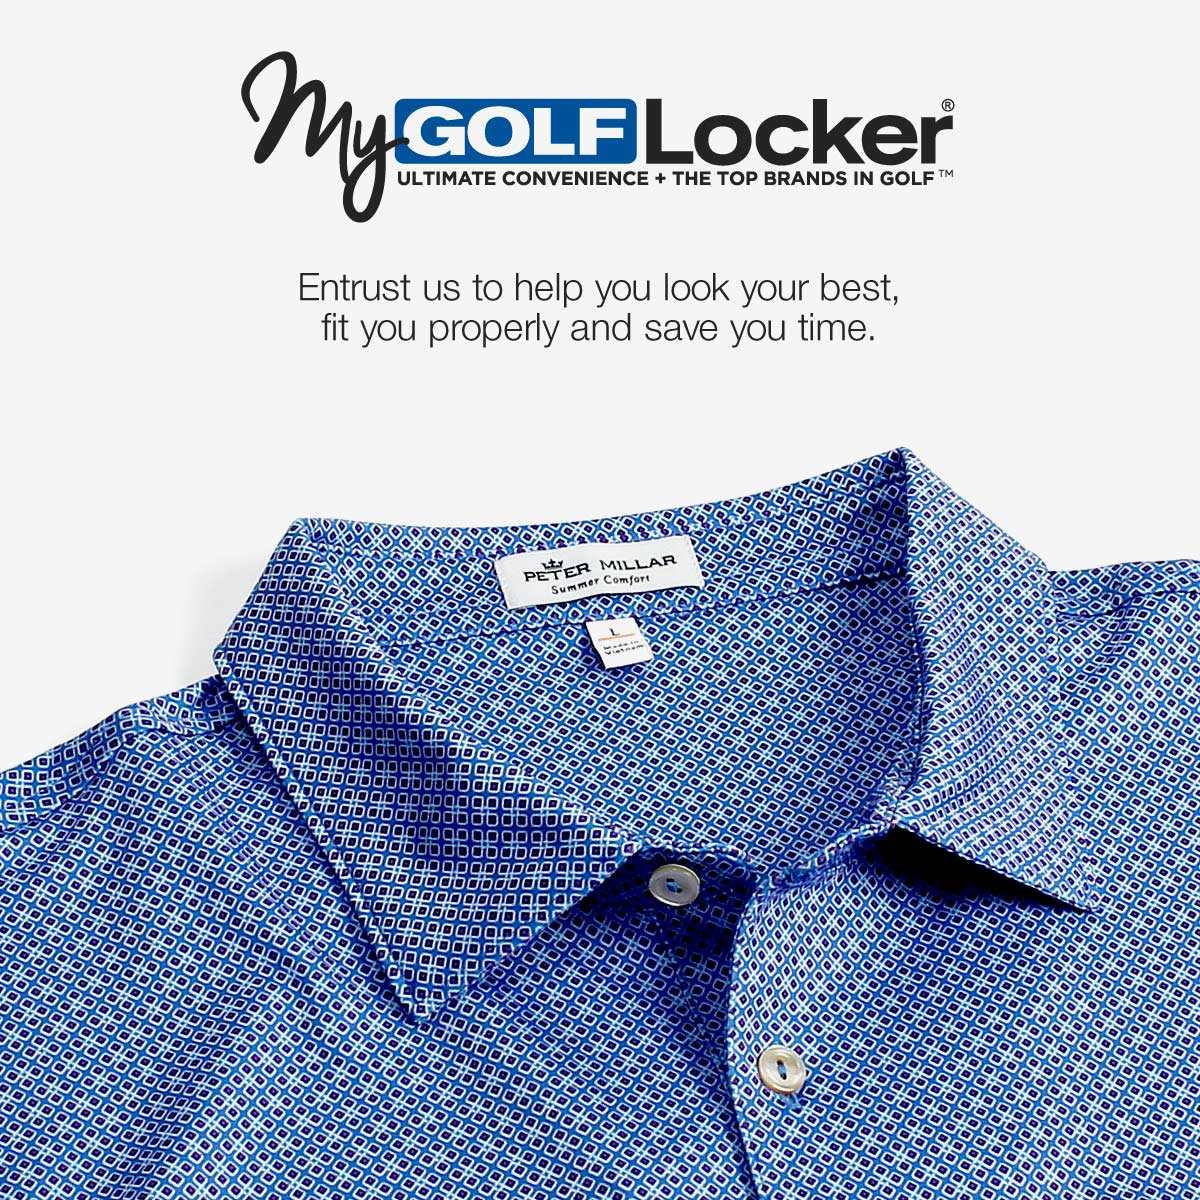 My Golf Locker - Our personal shopping service. Start your Patron Profile today.